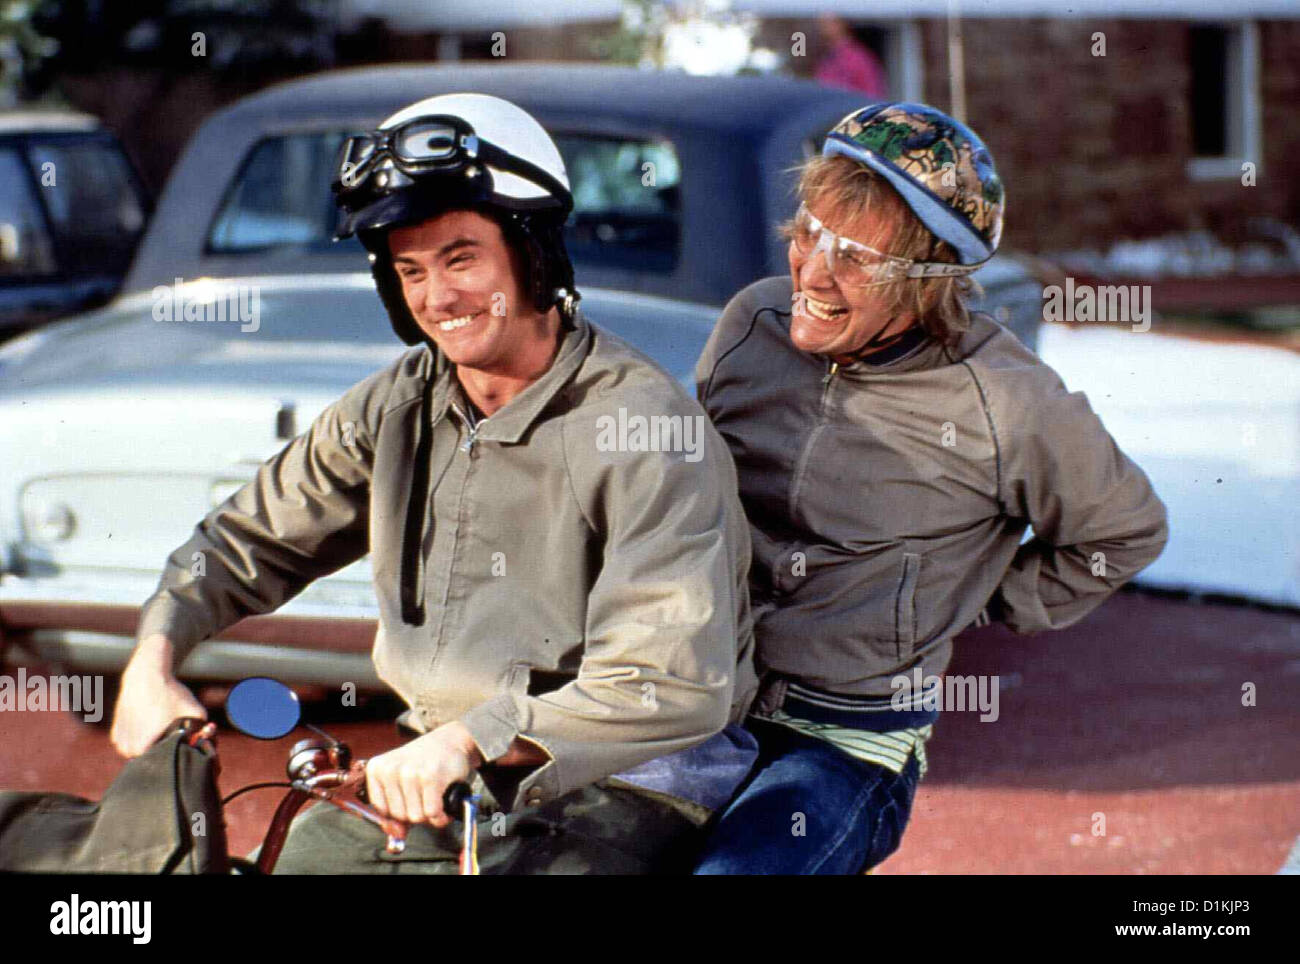 dumb and dumber full movie free download